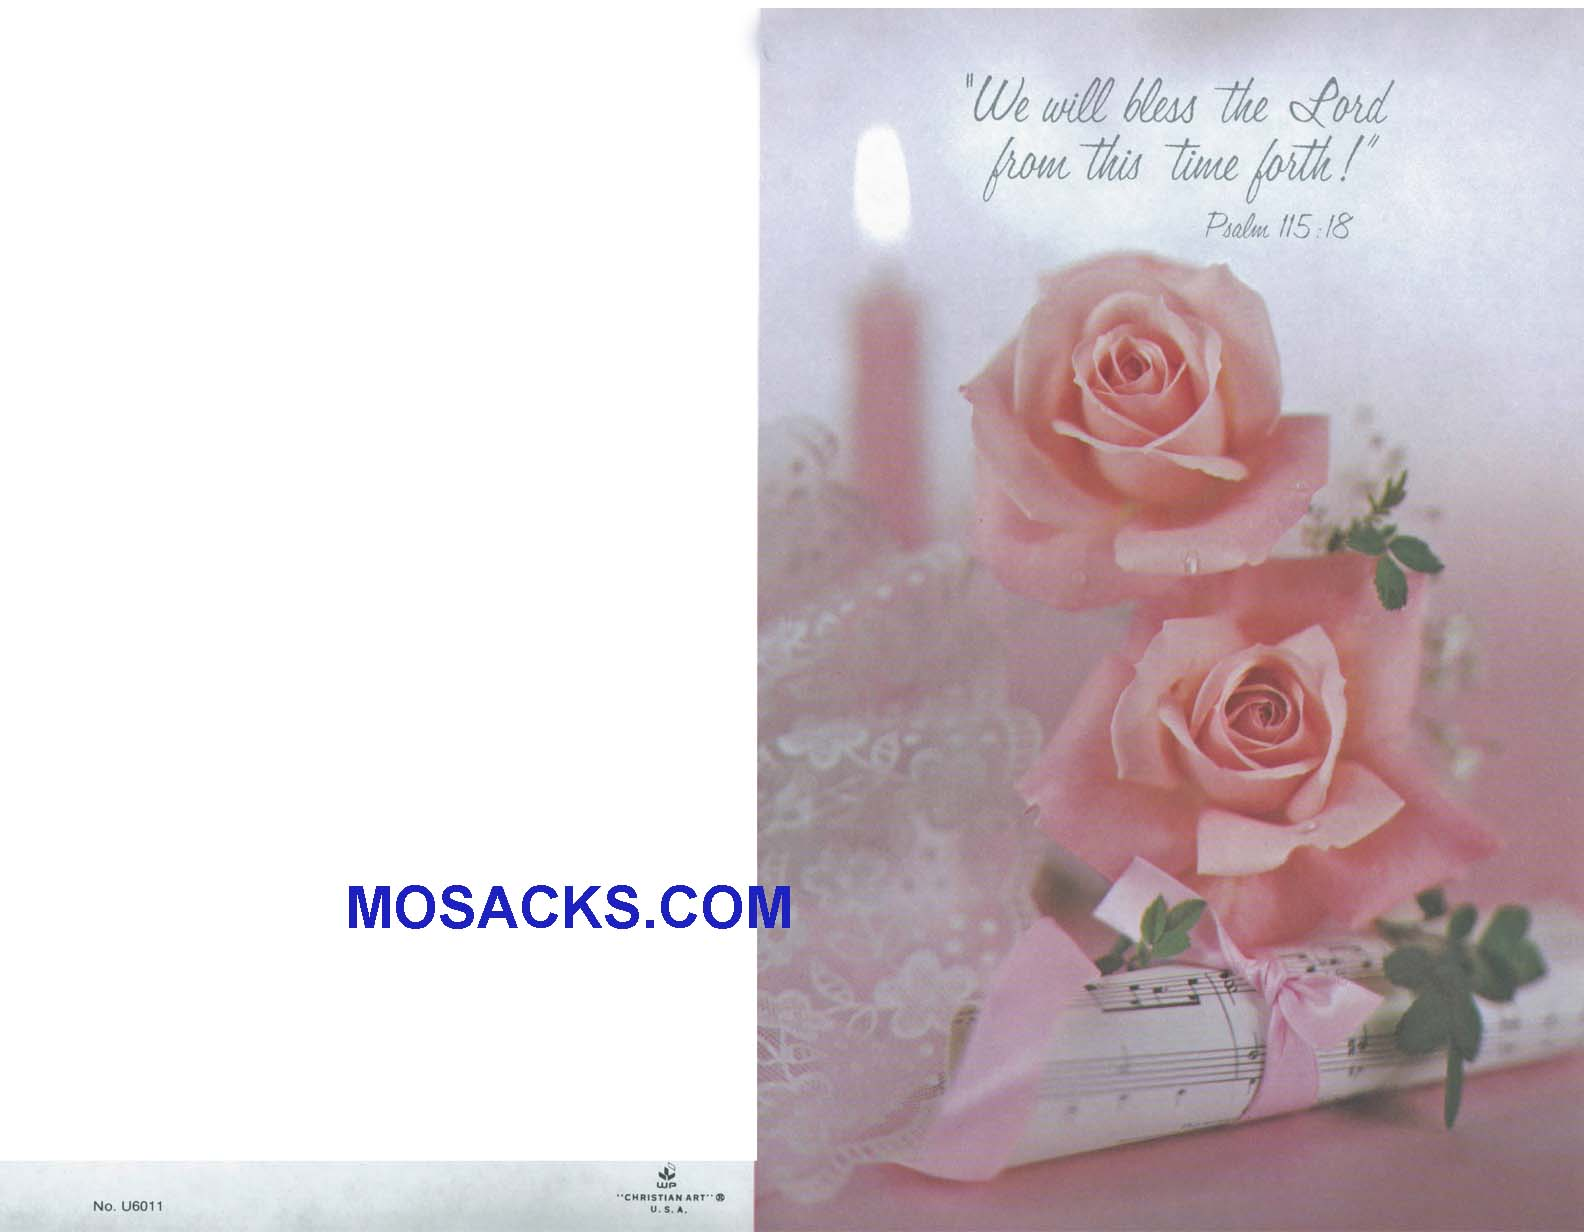 Wedding Bulletin Cover Bless The Lord 100 Pack-U6011, Wedding Cover